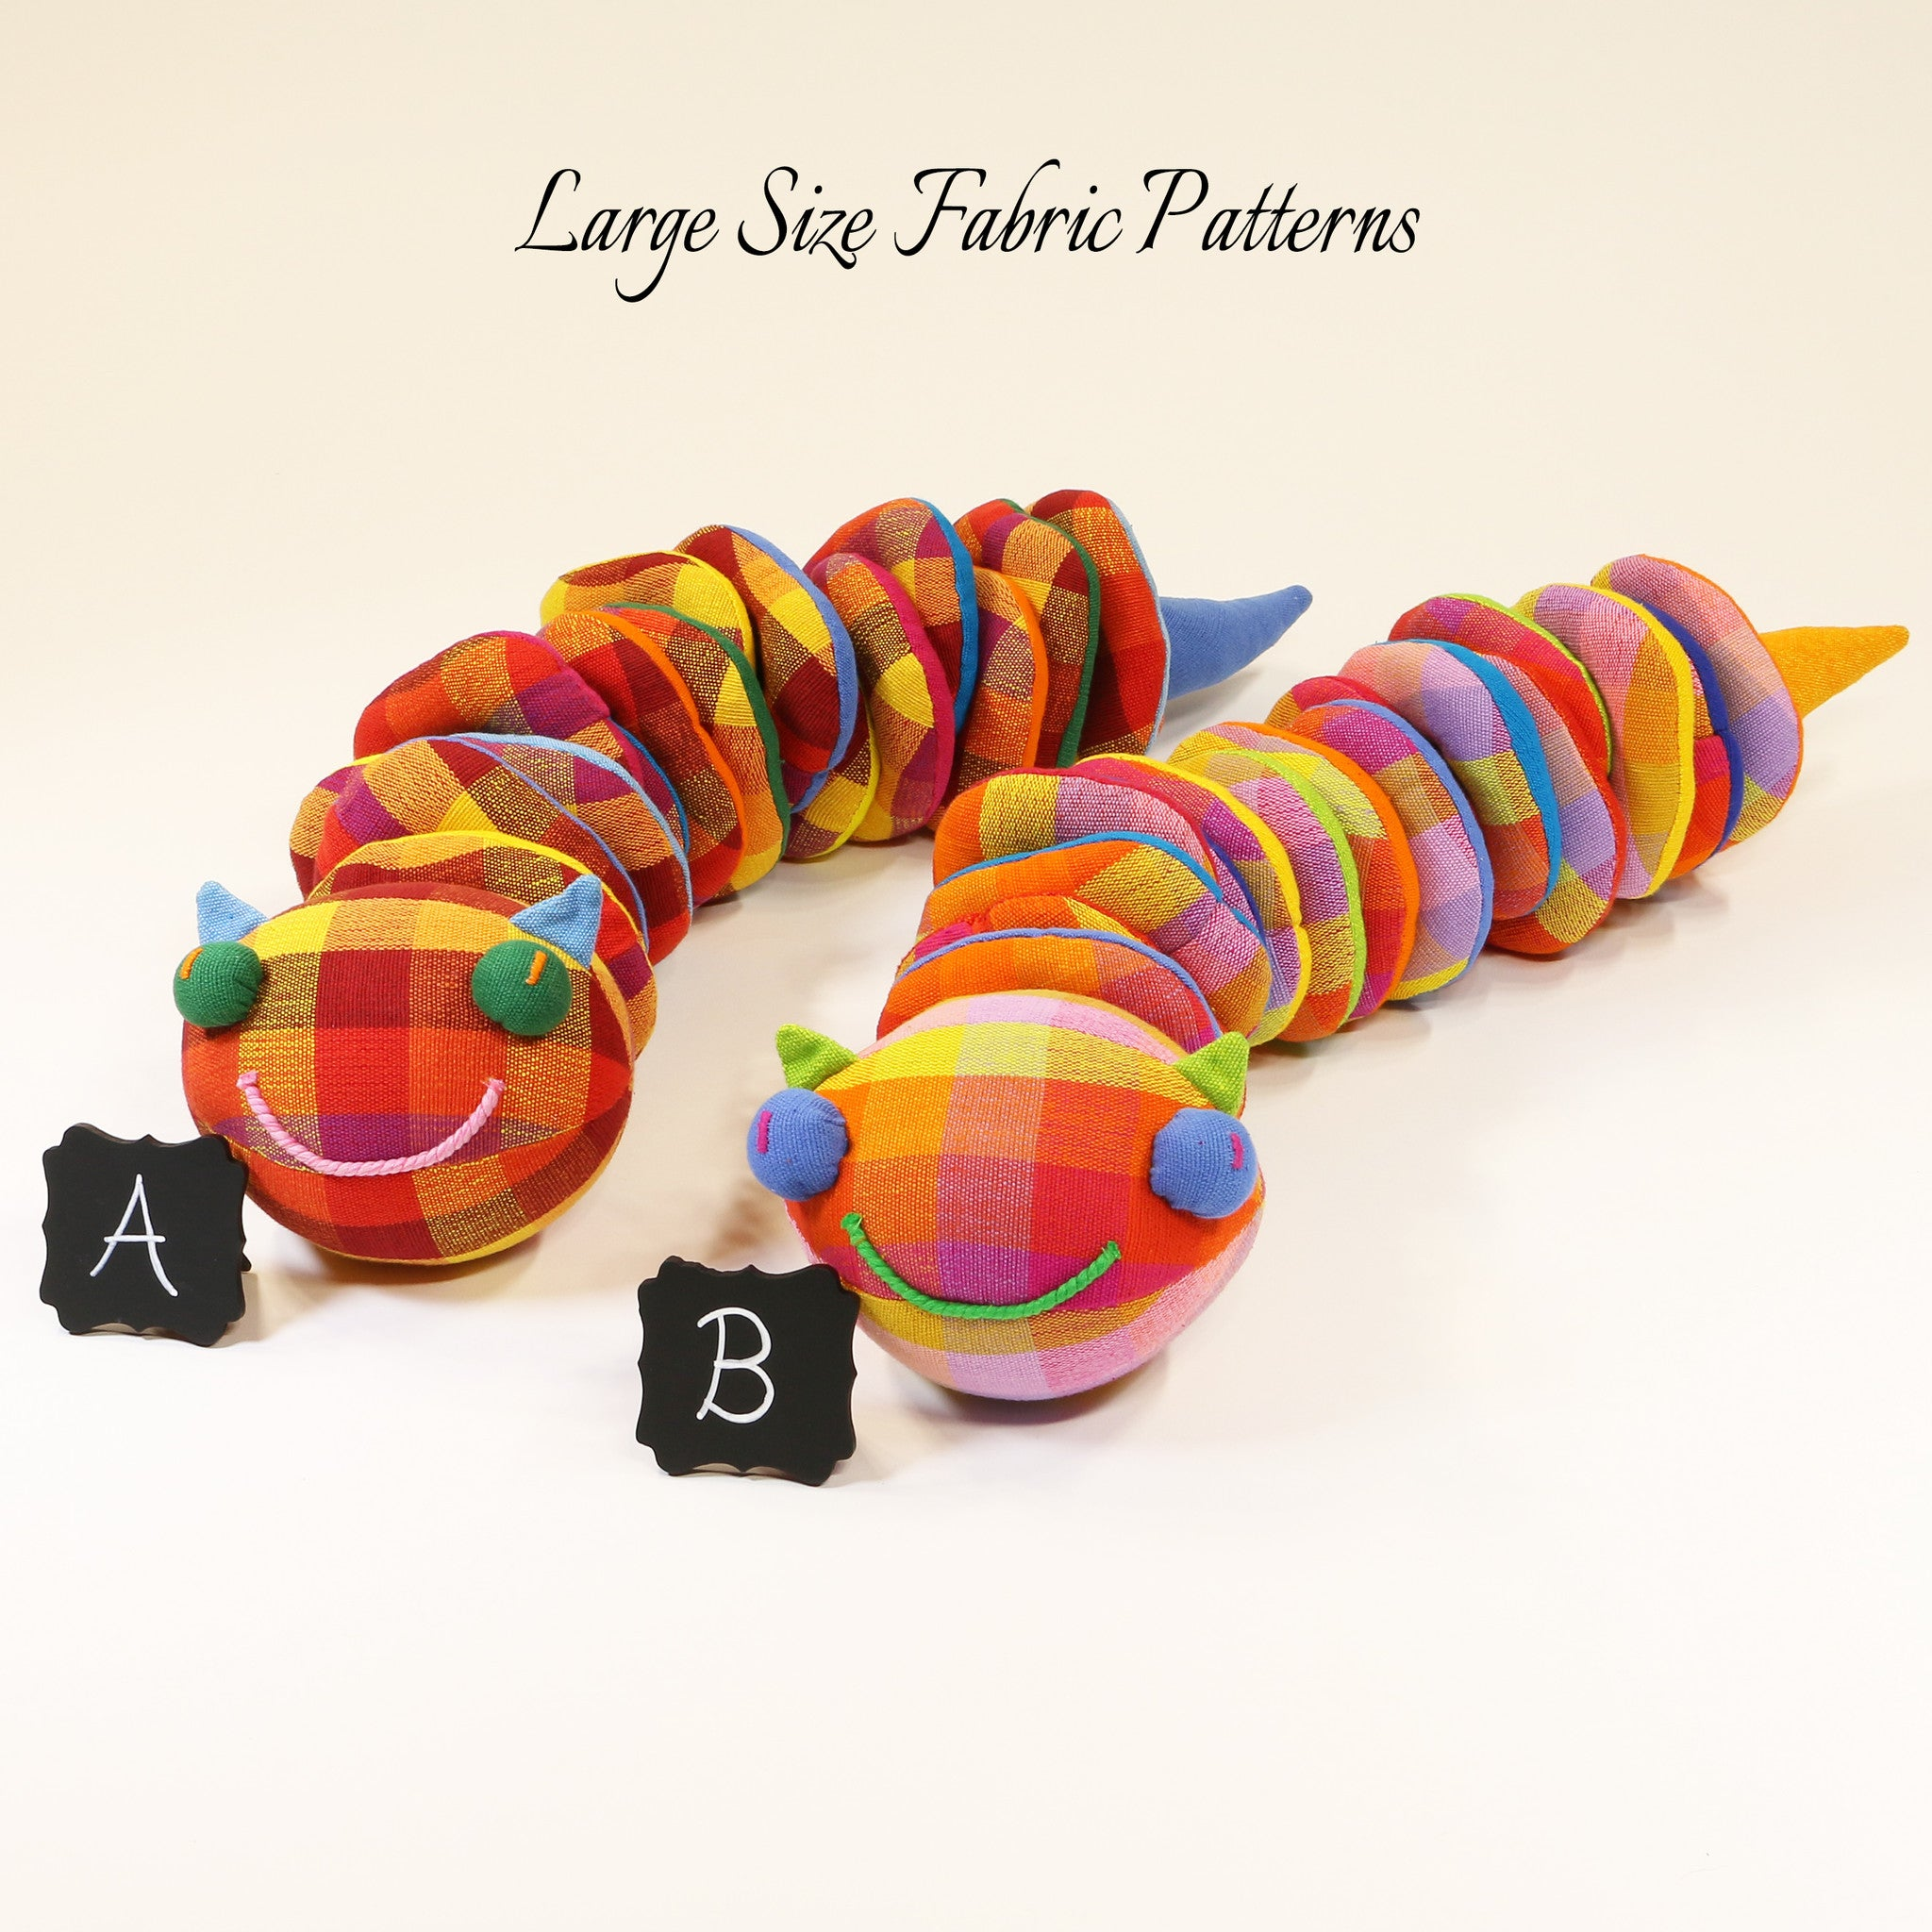 Christy, the Caterpillar – large size fabric patterns shown